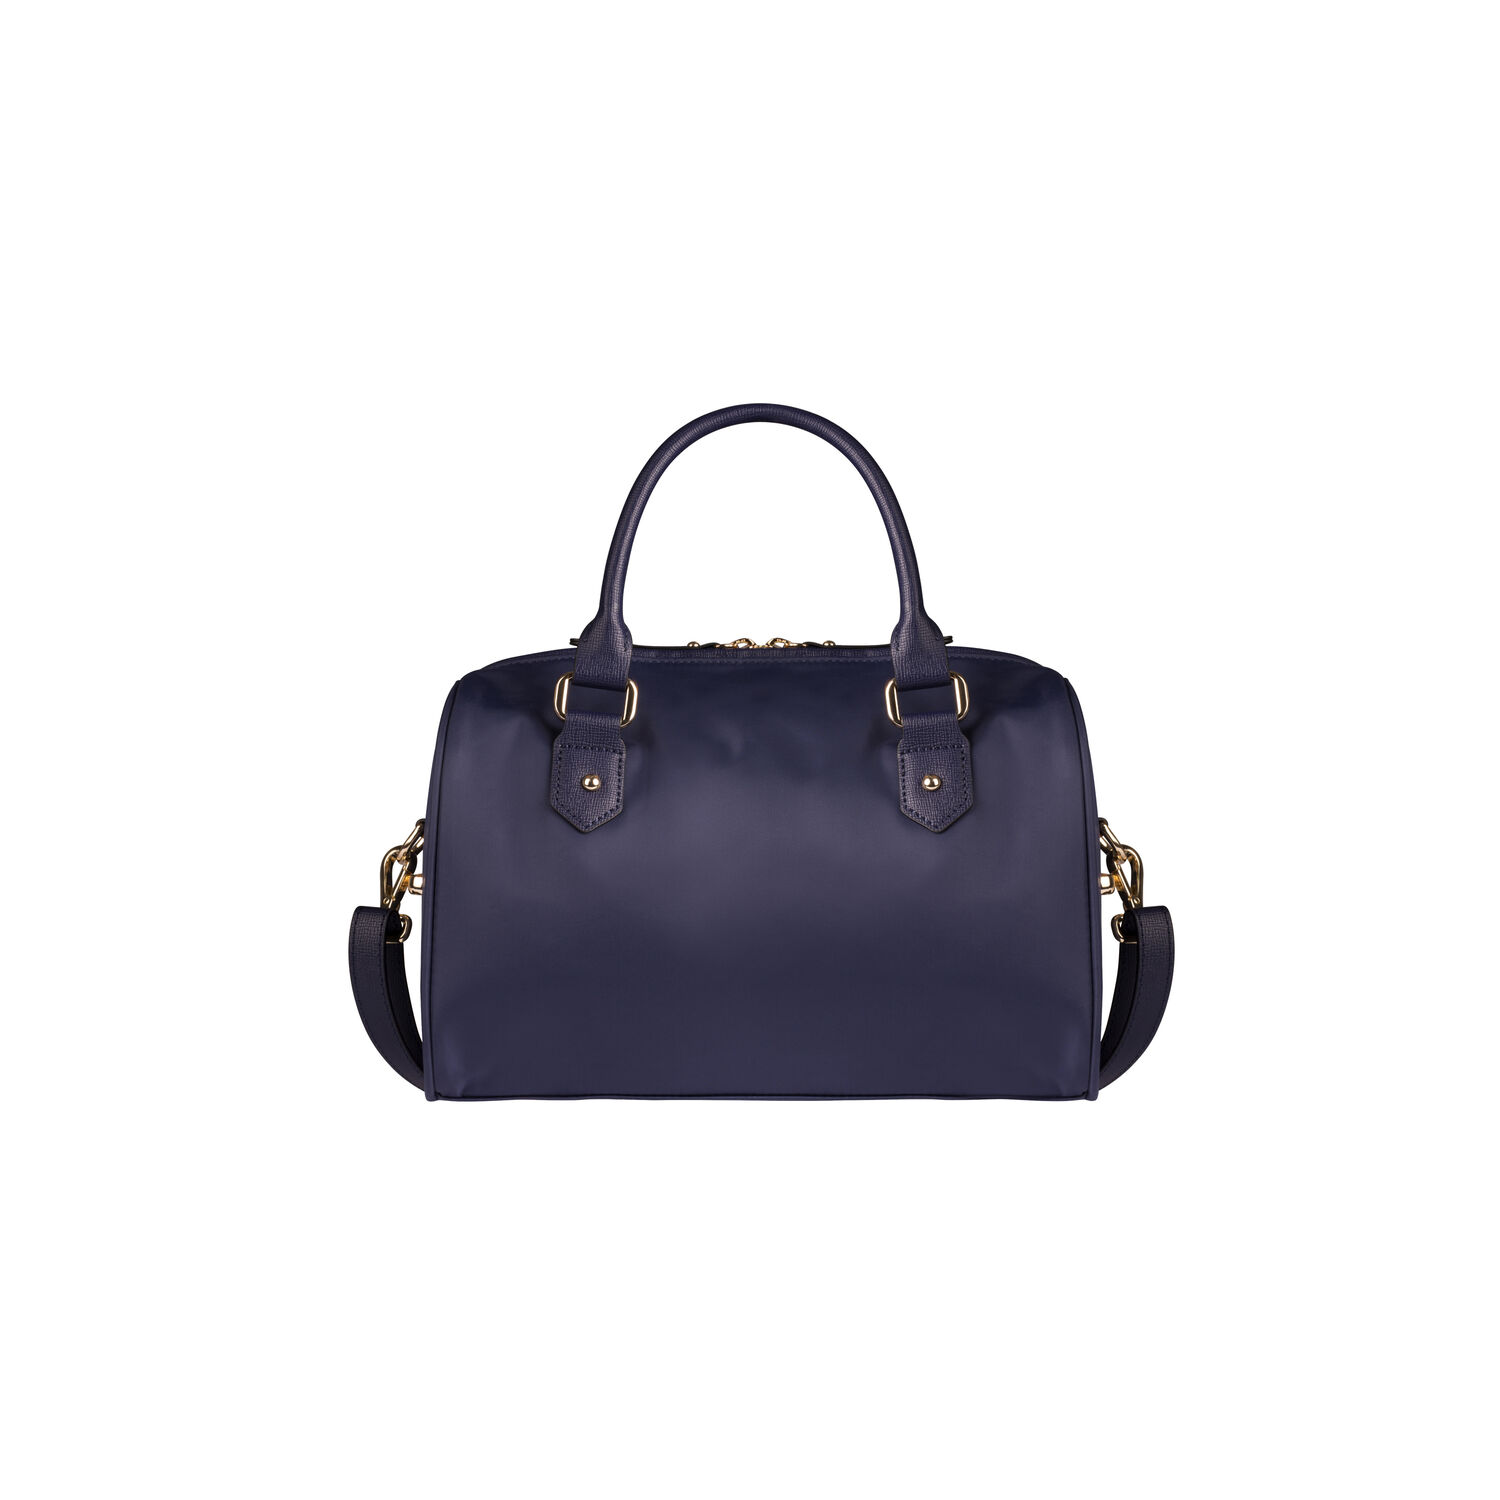 Lipault Plume Avenue Bowling Bag S In The Color Night Blue